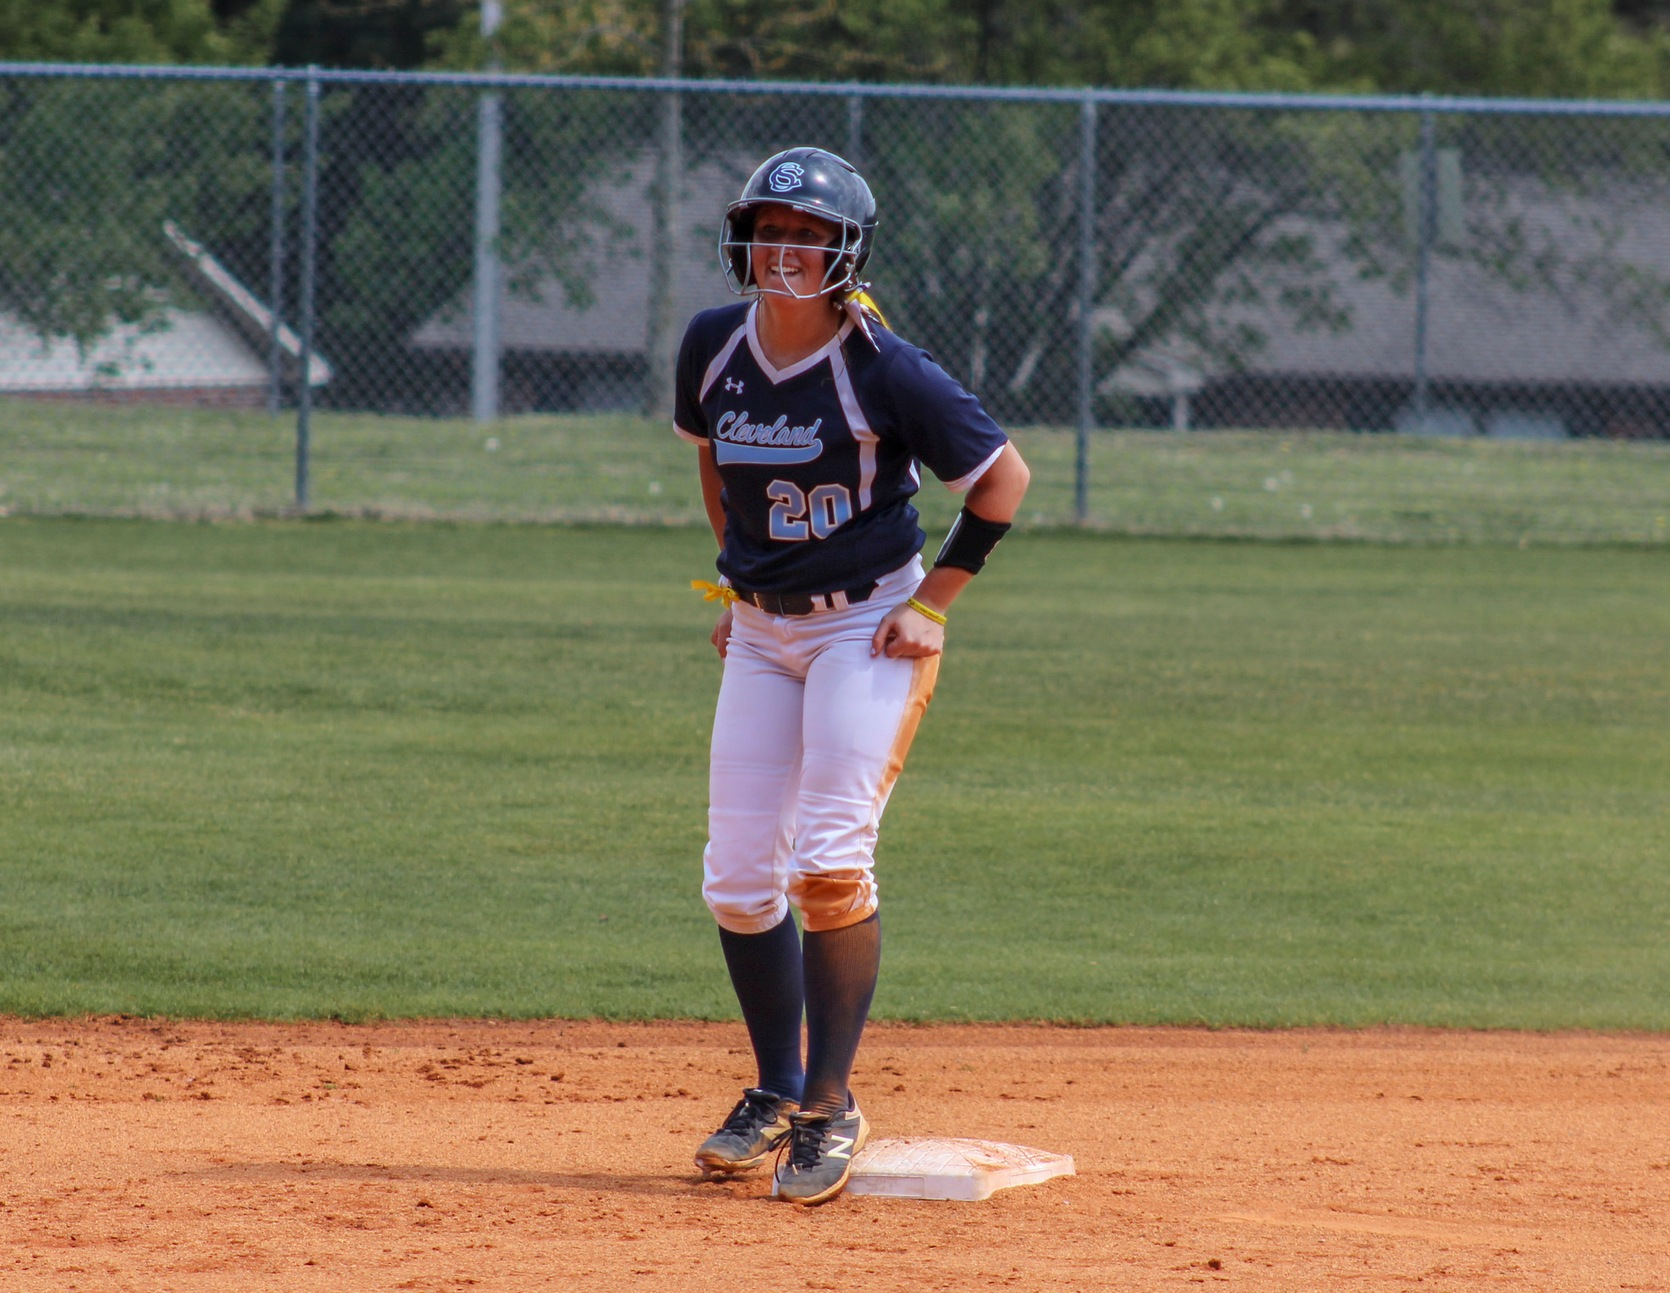 PREVIEW: Softball Enters First Round of Tournament